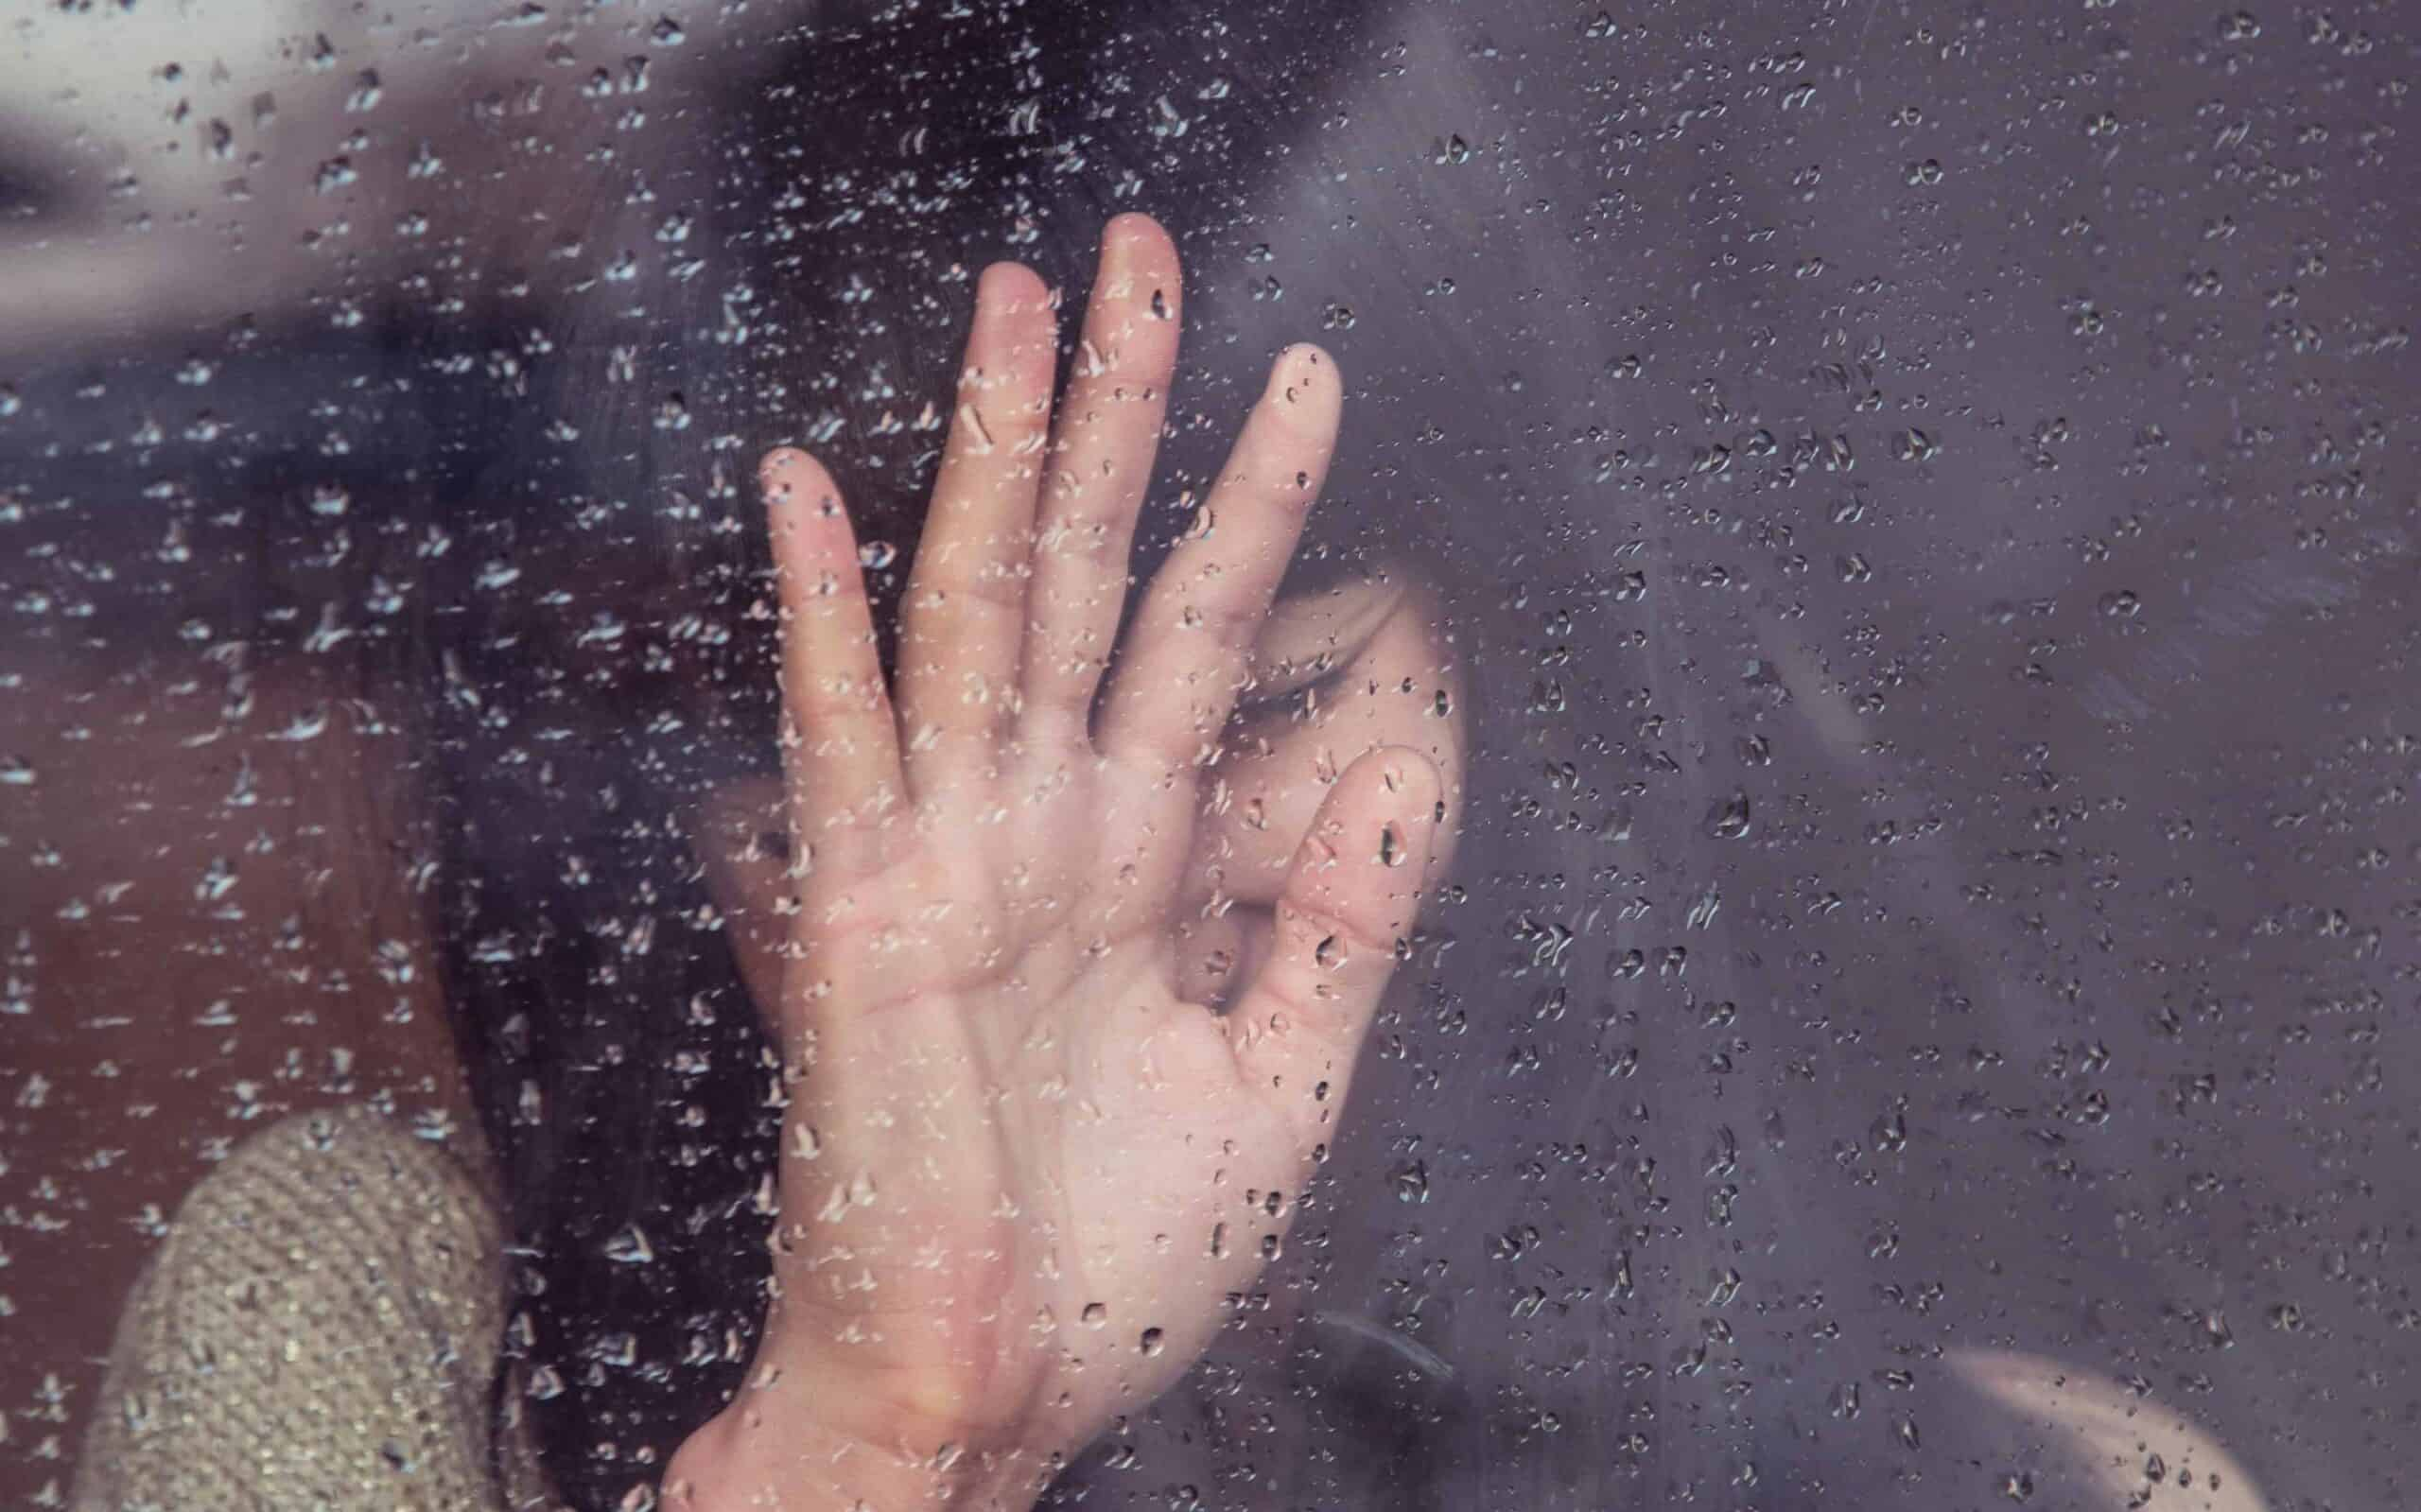 A sad, crying woman standing at a window with raindrops on it.